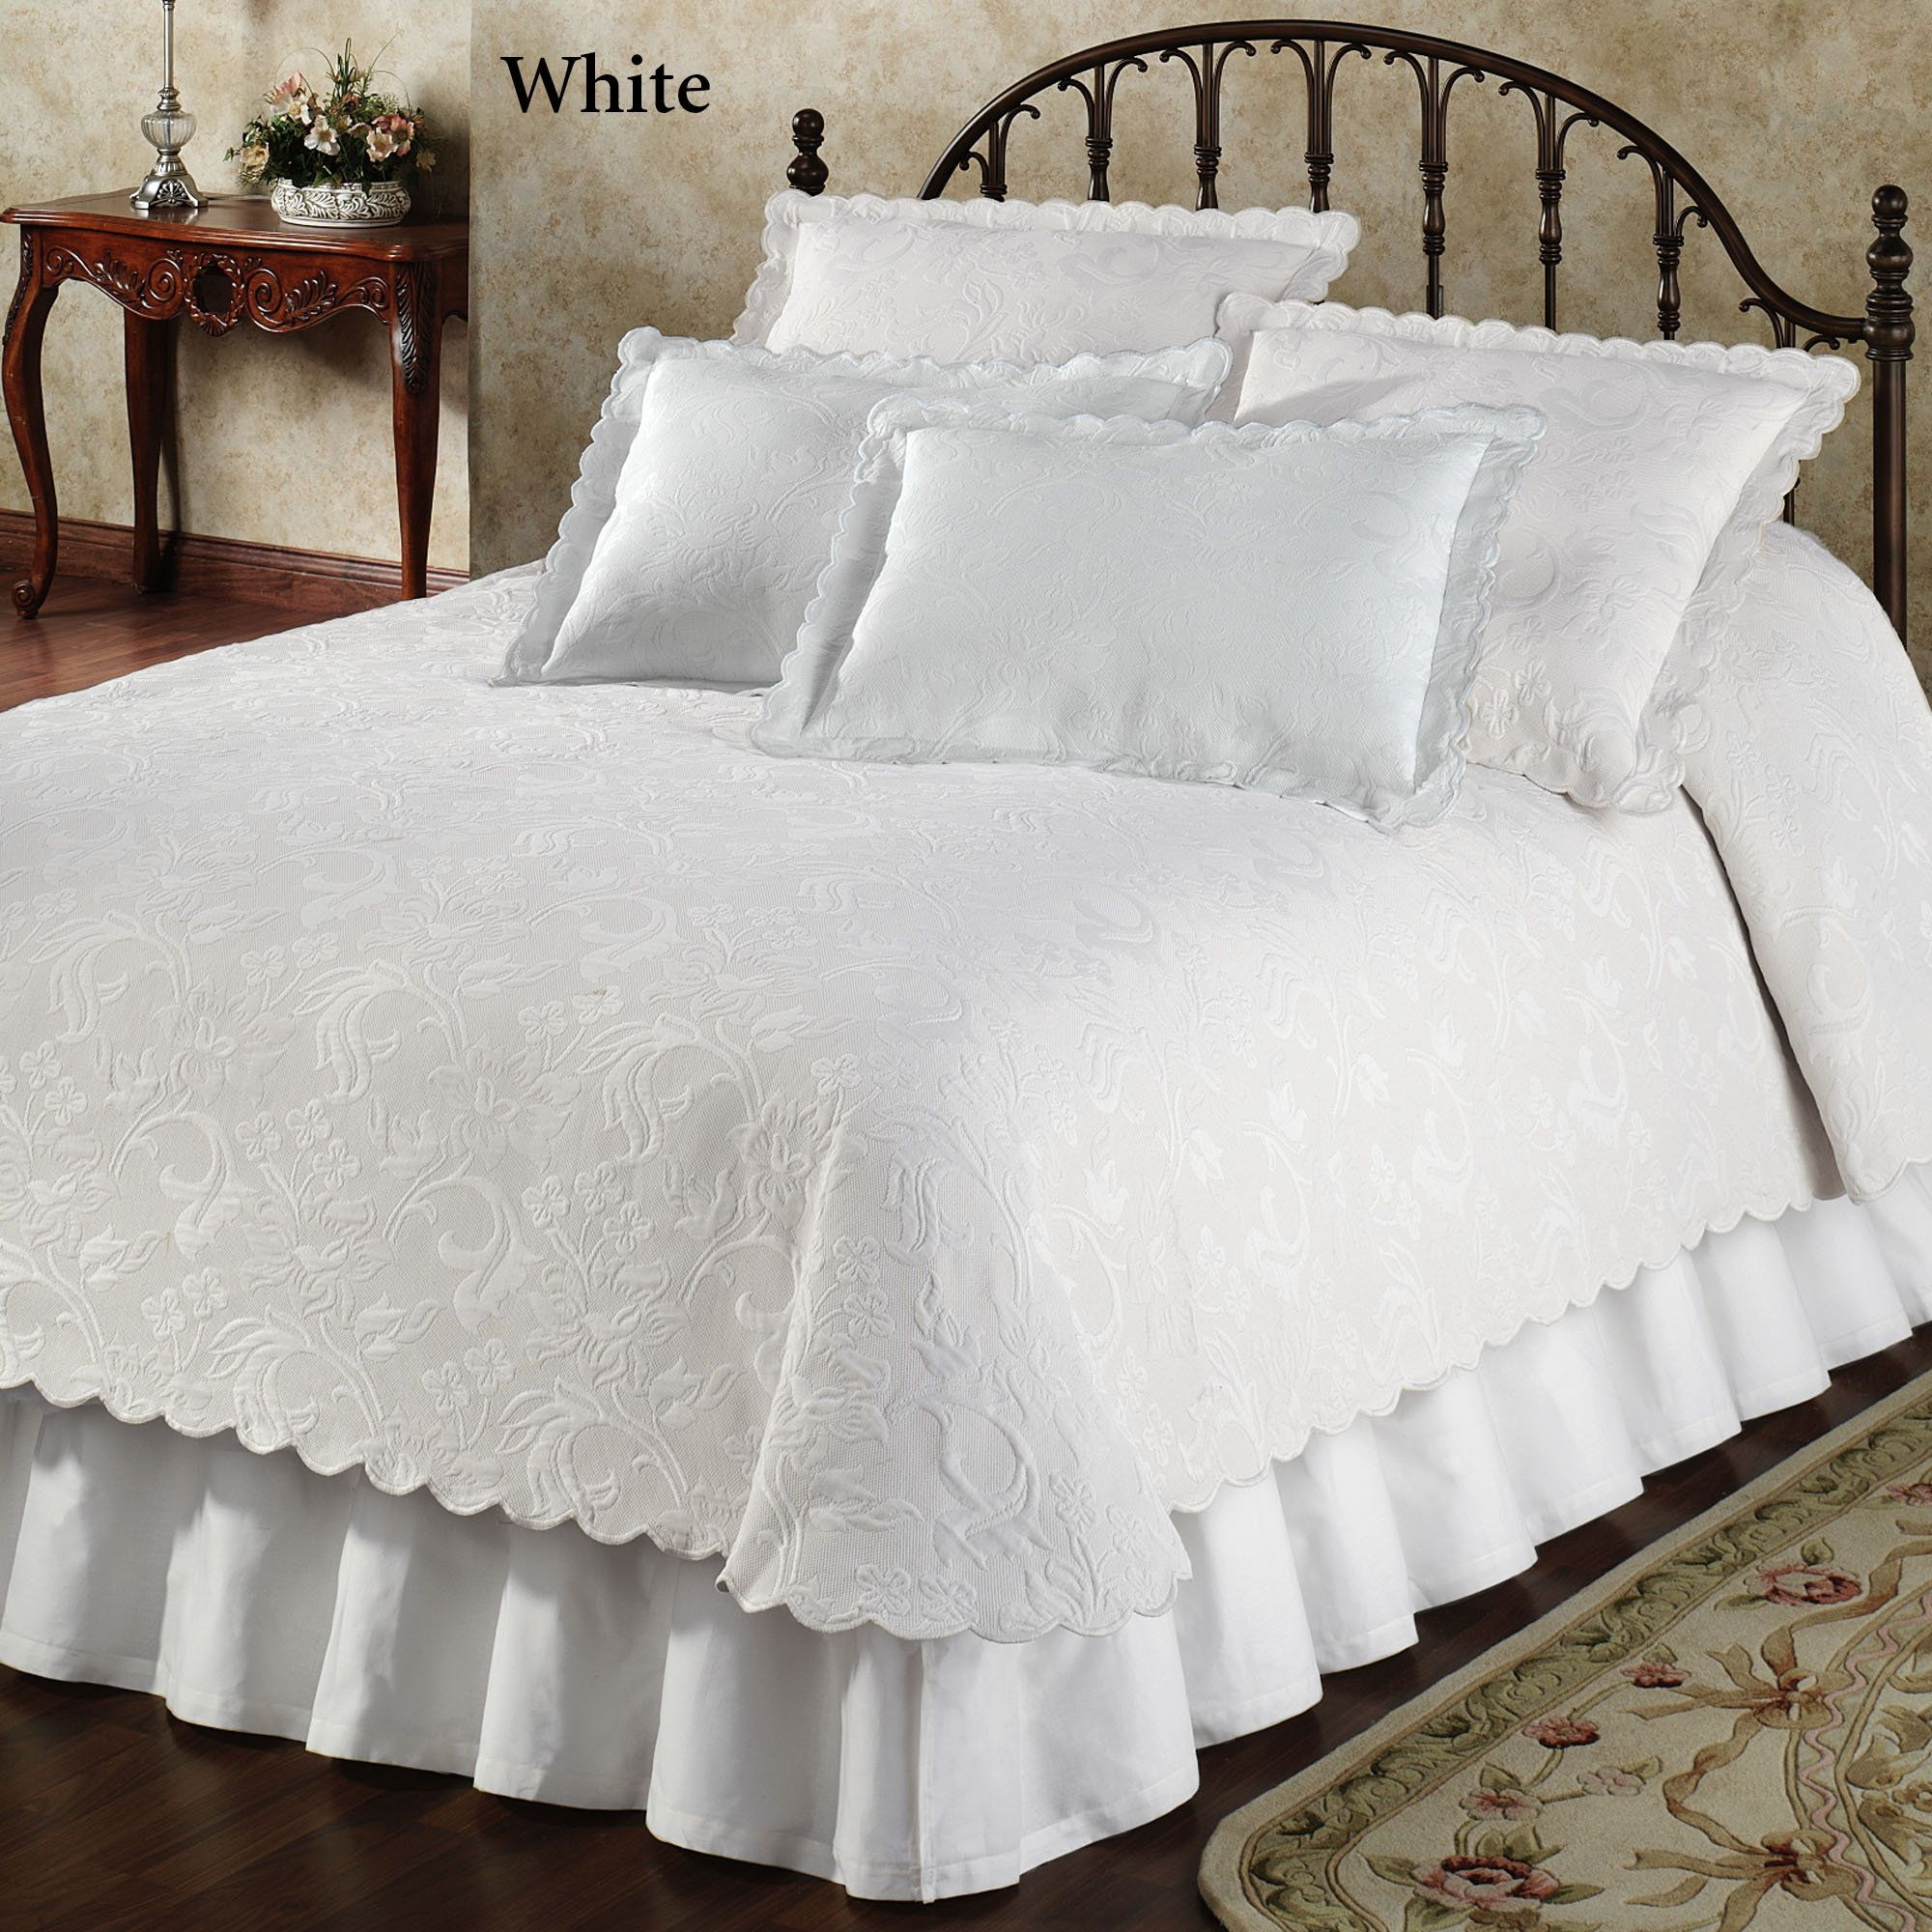 bedspreads bedding french ideas anddspreads elegant for of curtain quilts with easy country and size collection bedroom comforters themed the inspirations full comforter sets luxury blanket bedrooms fabulous catalog curtains jla online thedroomdding enchanting fascinating california ensembles